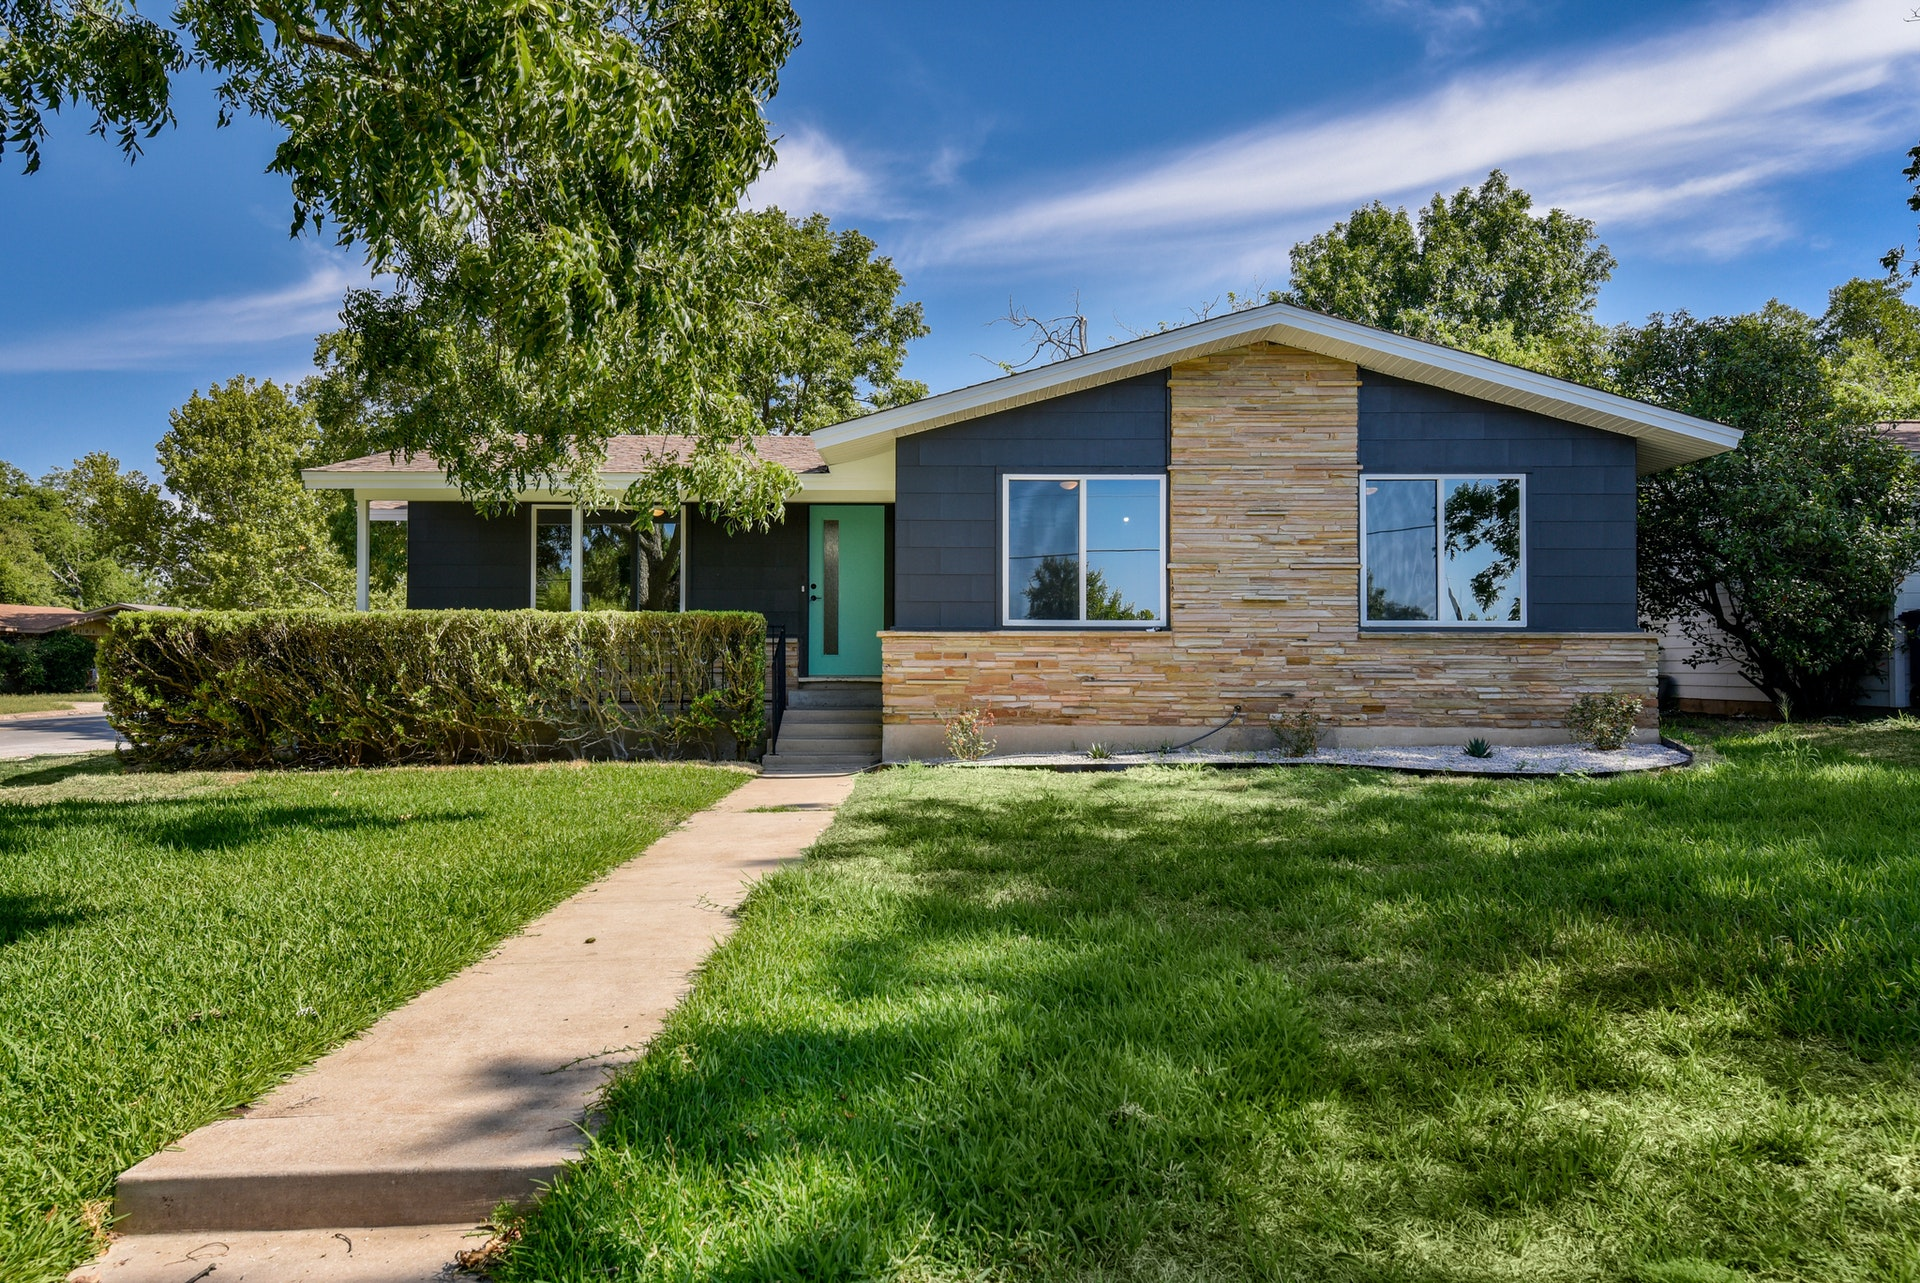 House flipping in Austin, TX continues throughout its downtown and surrounding areas as new investment opportunities emerge.